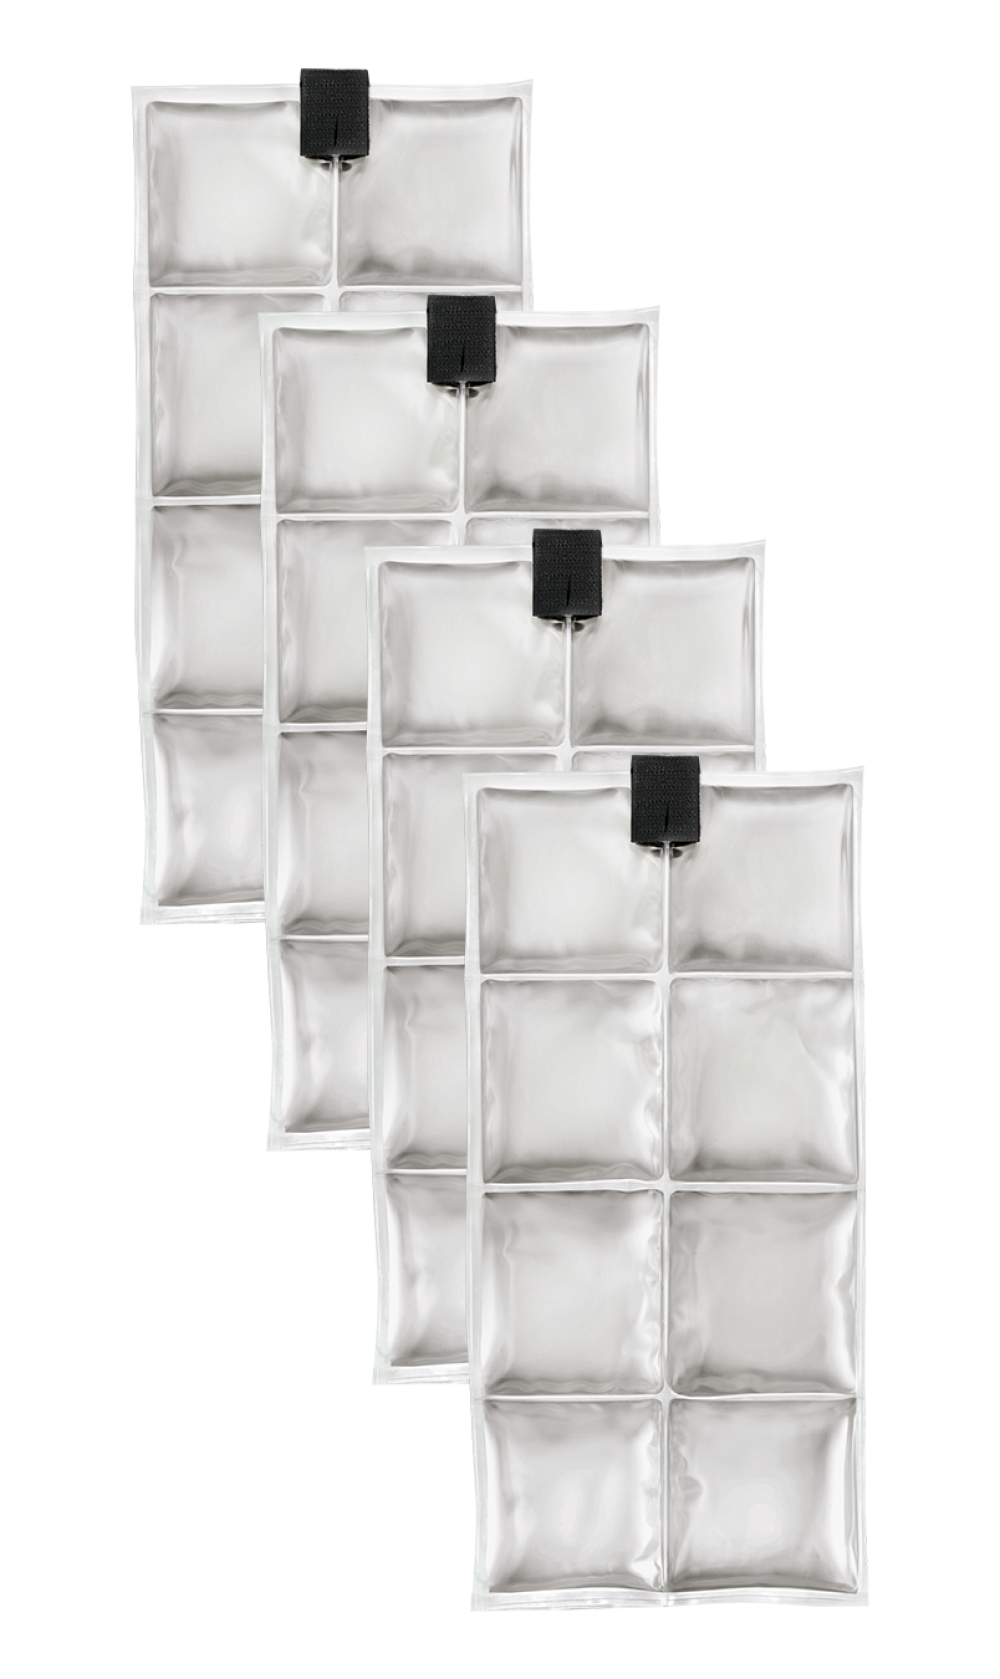 Coolpac 24˚C / 75˚F - 8 cells White (set of 4 units)